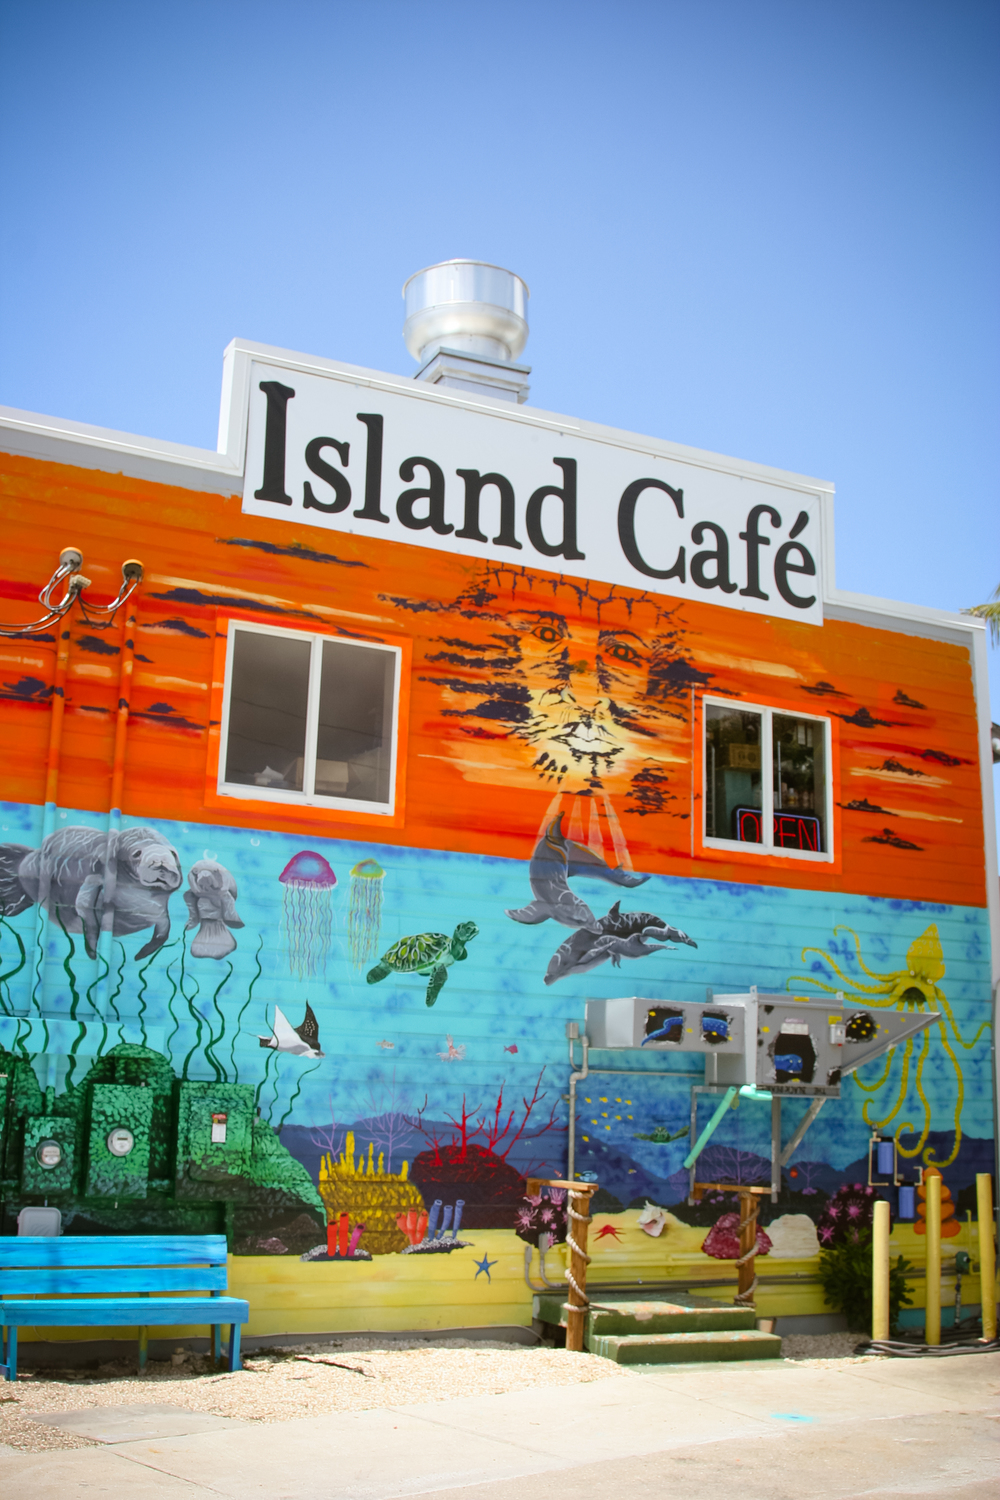 Look for the brightmural on the side ofThe Island Cafe as you come into town, for good seafood, live music, and the view!